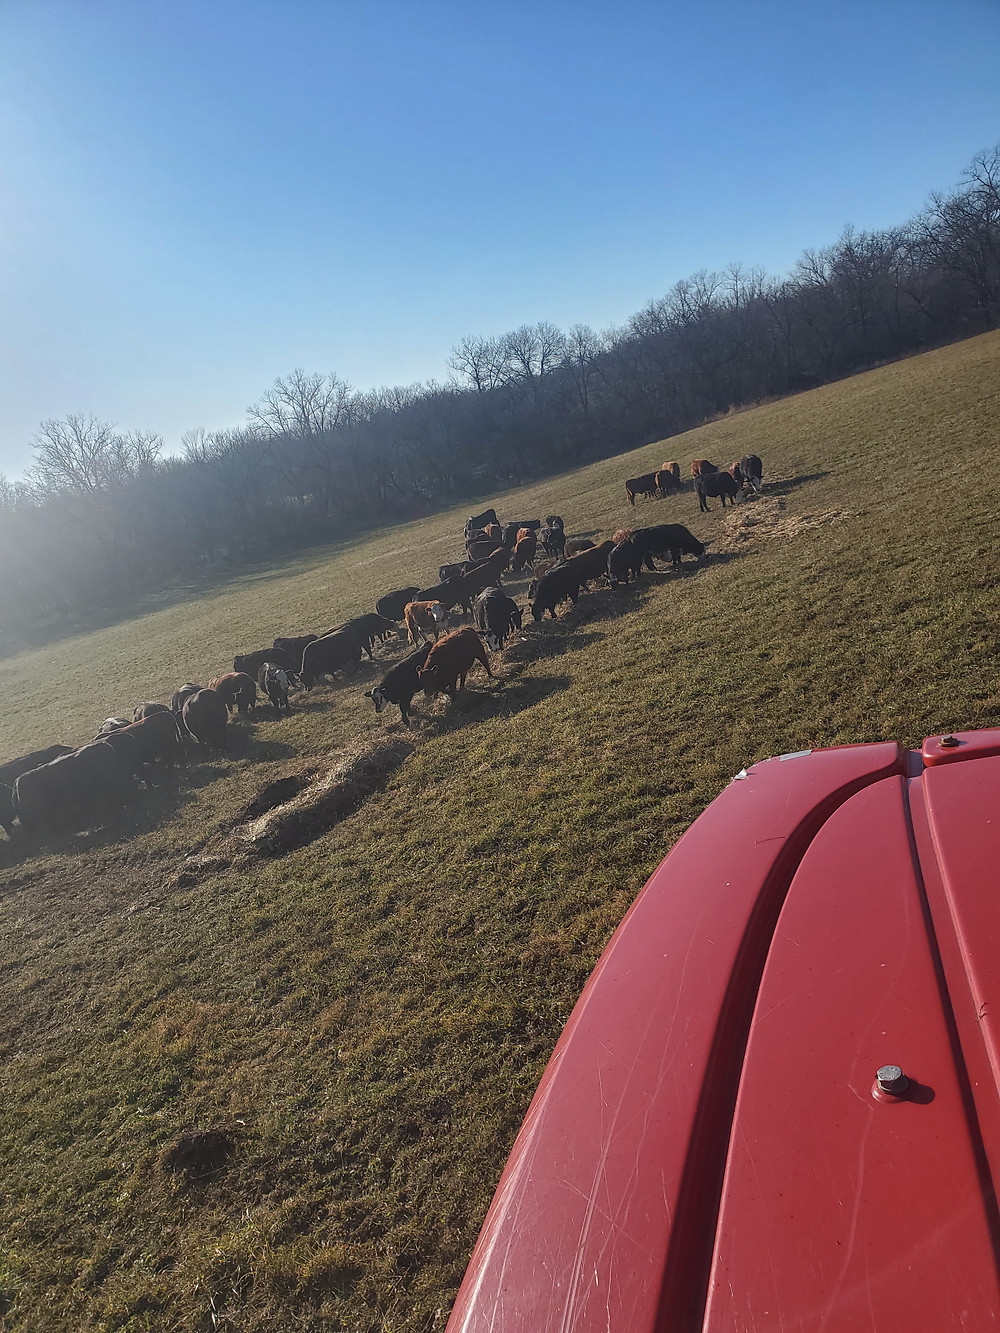 Cattle gather around hay rolled out on the ground.